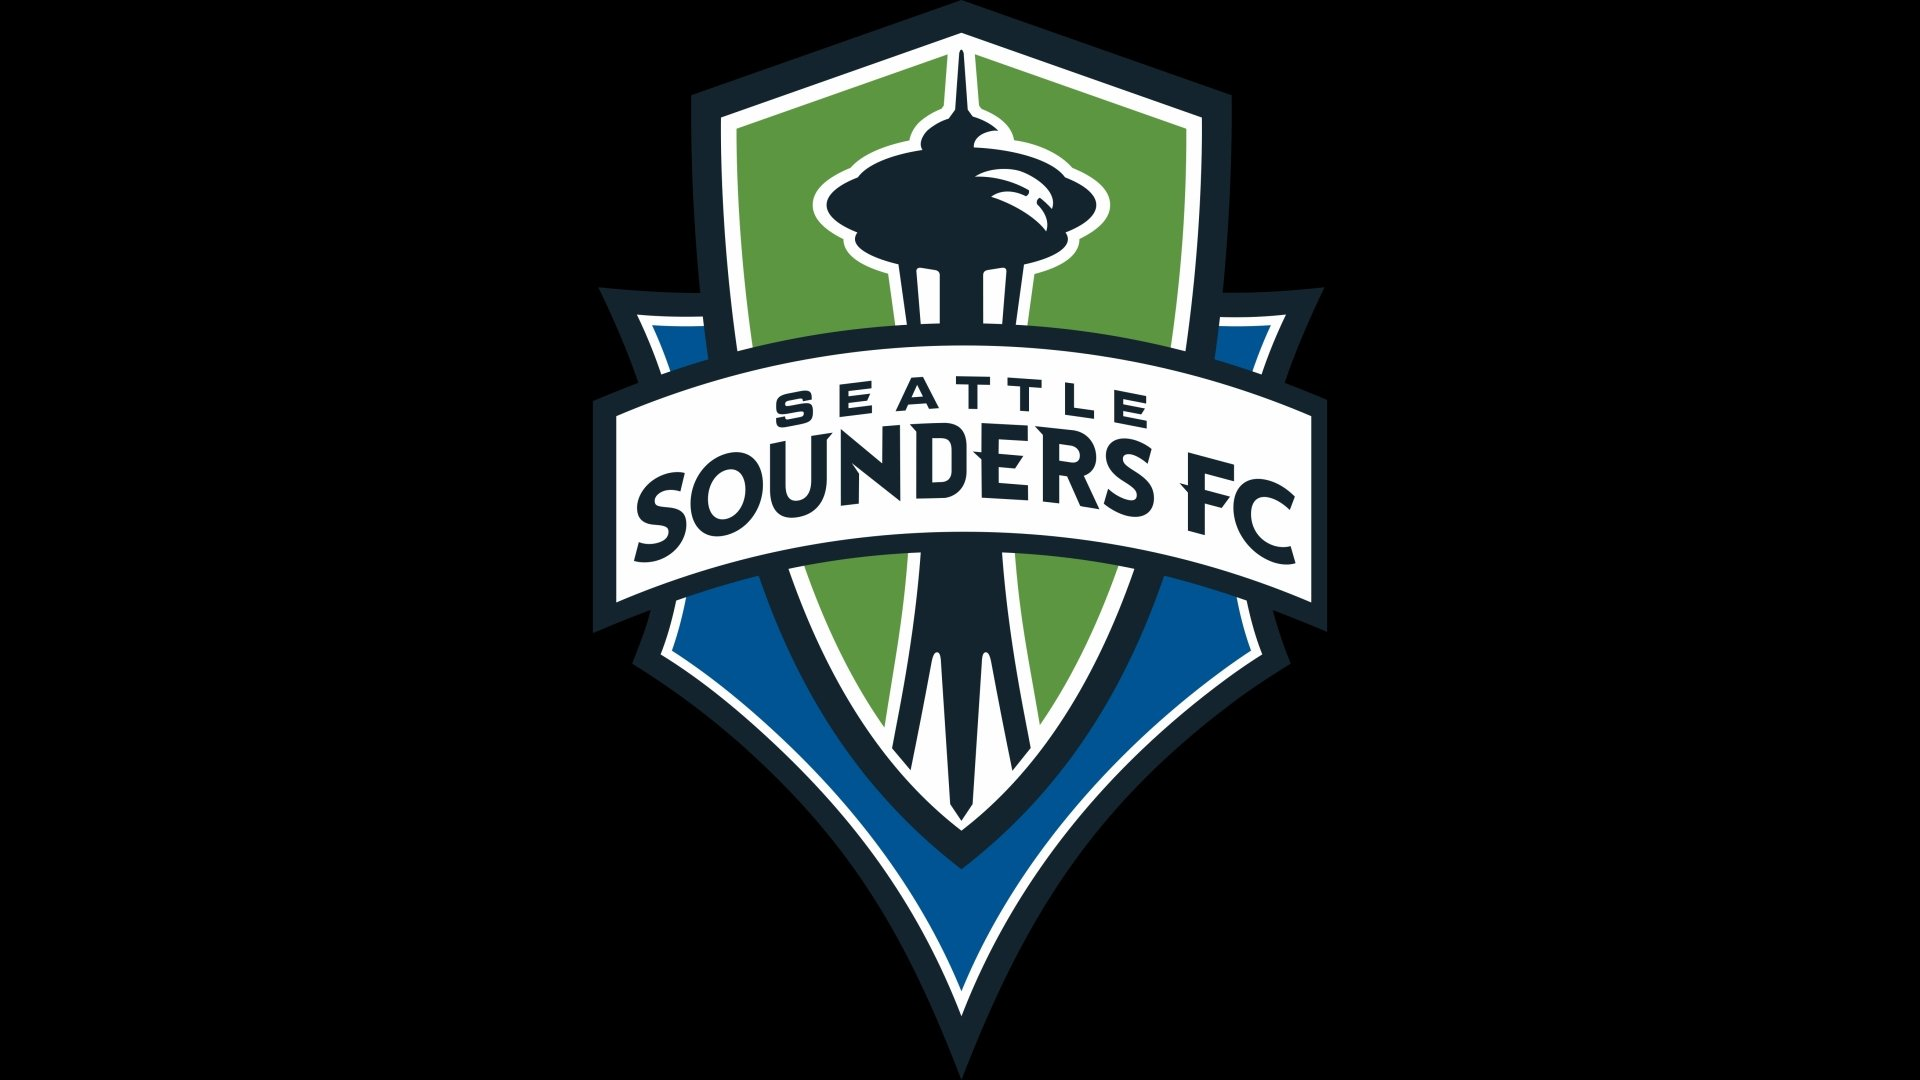 19 Seattle Sounders FC HD Wallpapers Background Images 1920x1080